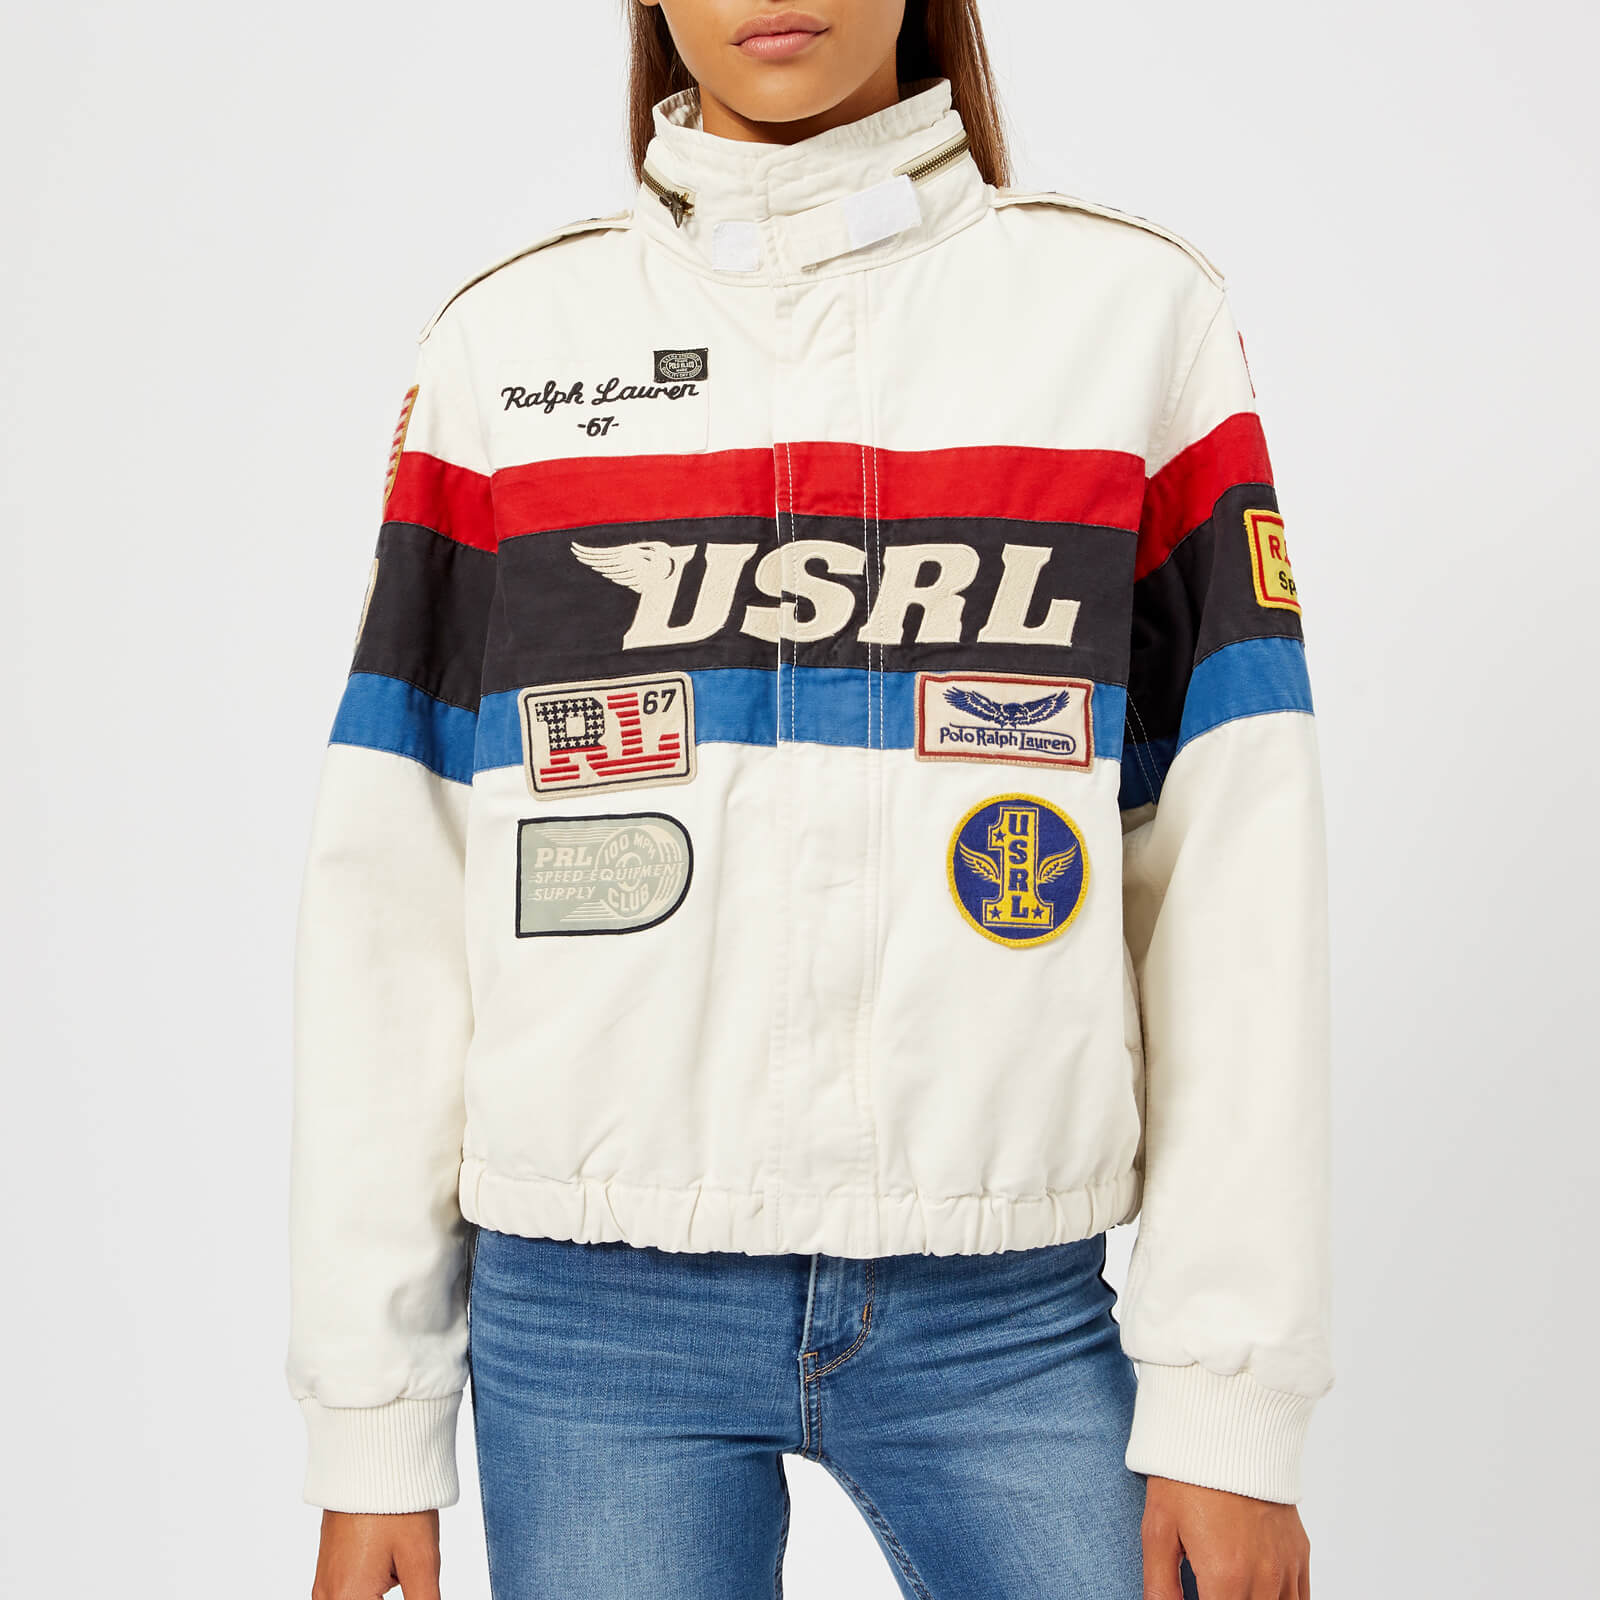 96e836017c Polo Ralph Lauren Women s Racing Bomber Jacket - White Blue Red Black Multi  - Free UK Delivery over £50